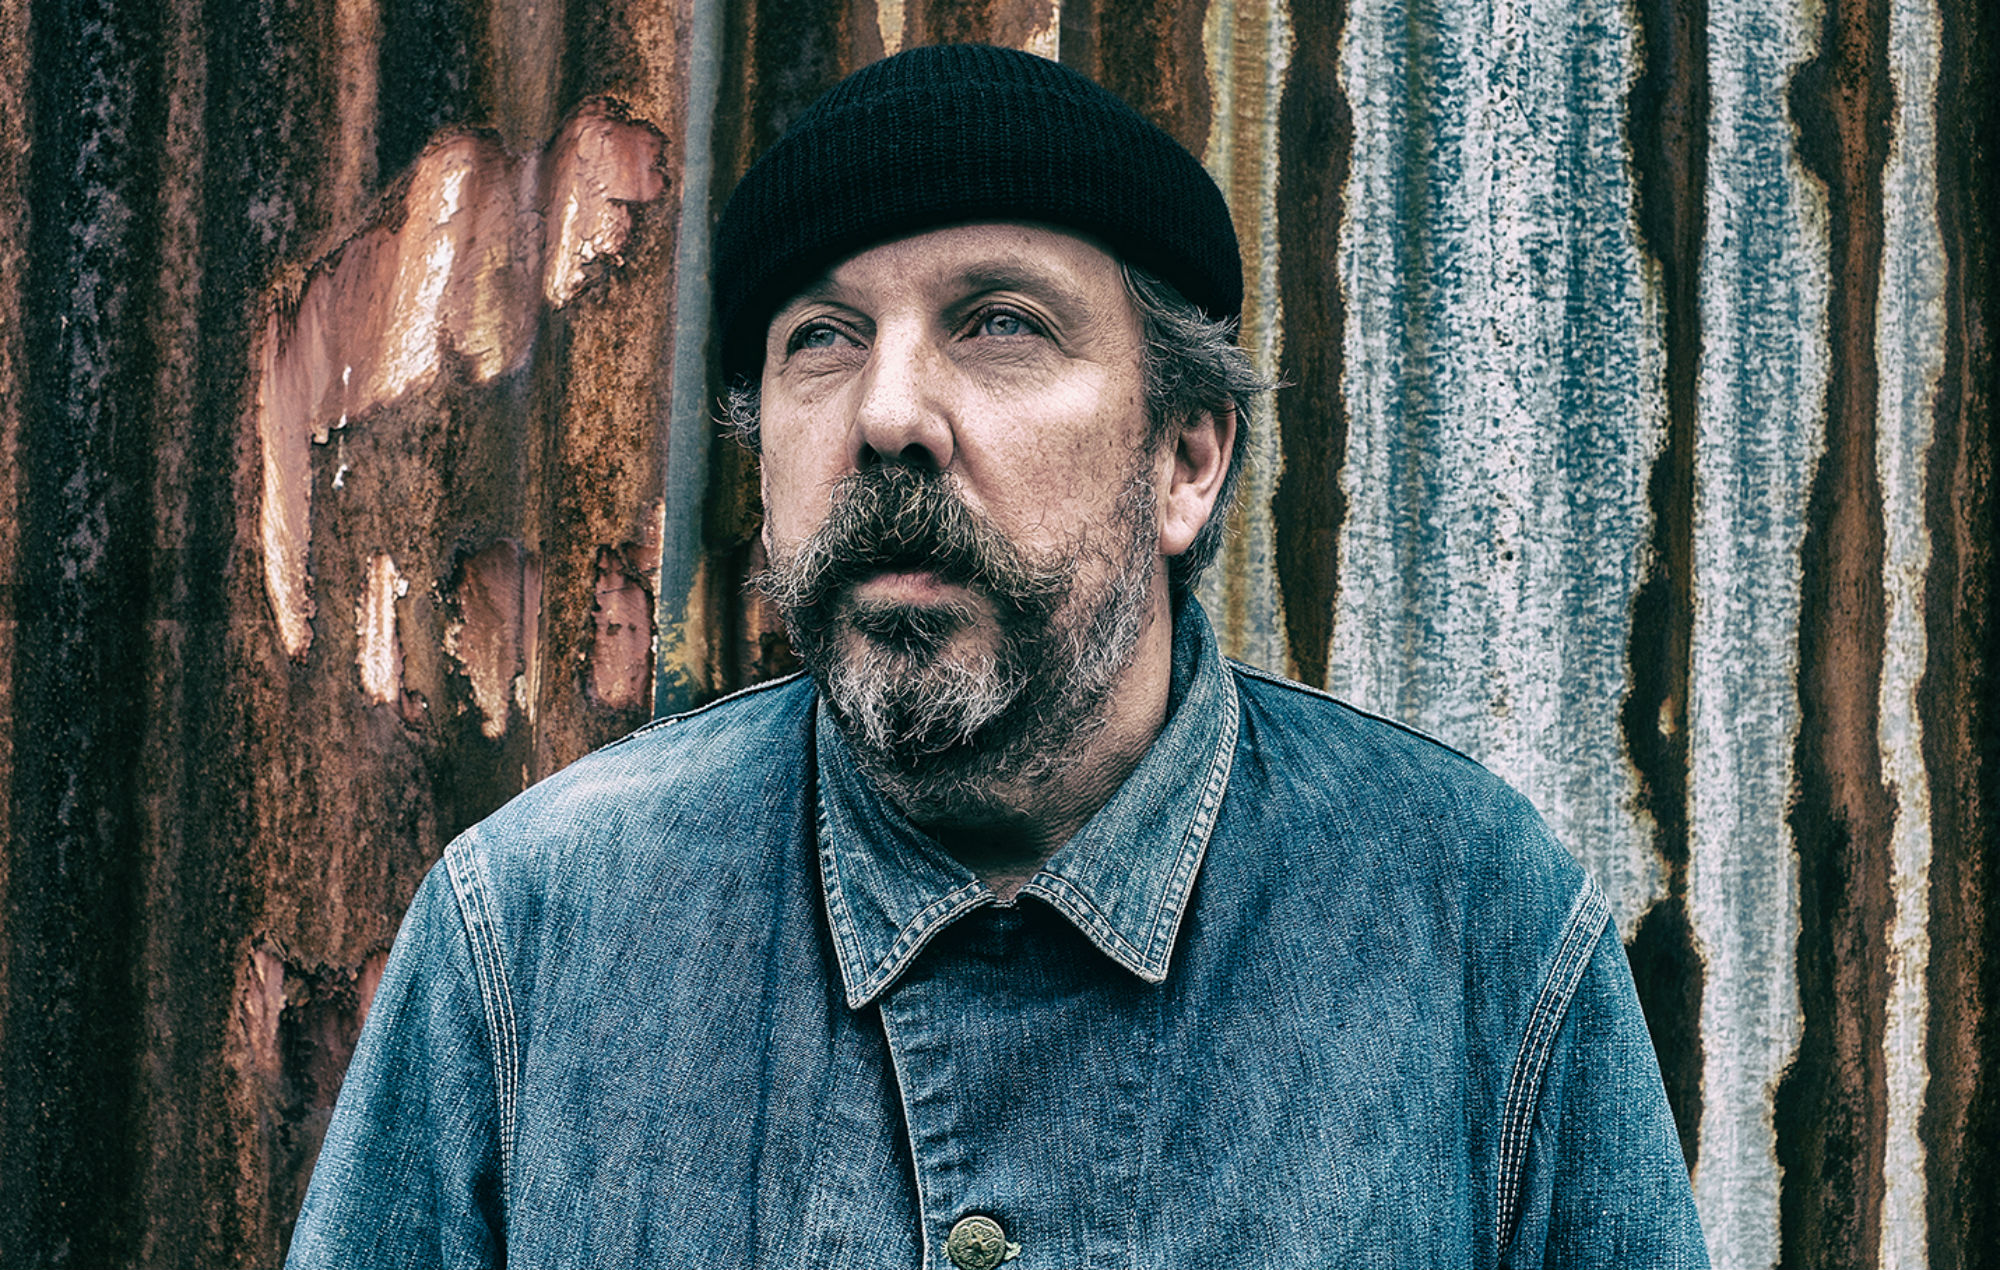 Celebrated DJ and Primal Scream producer Andrew Weatherall has died